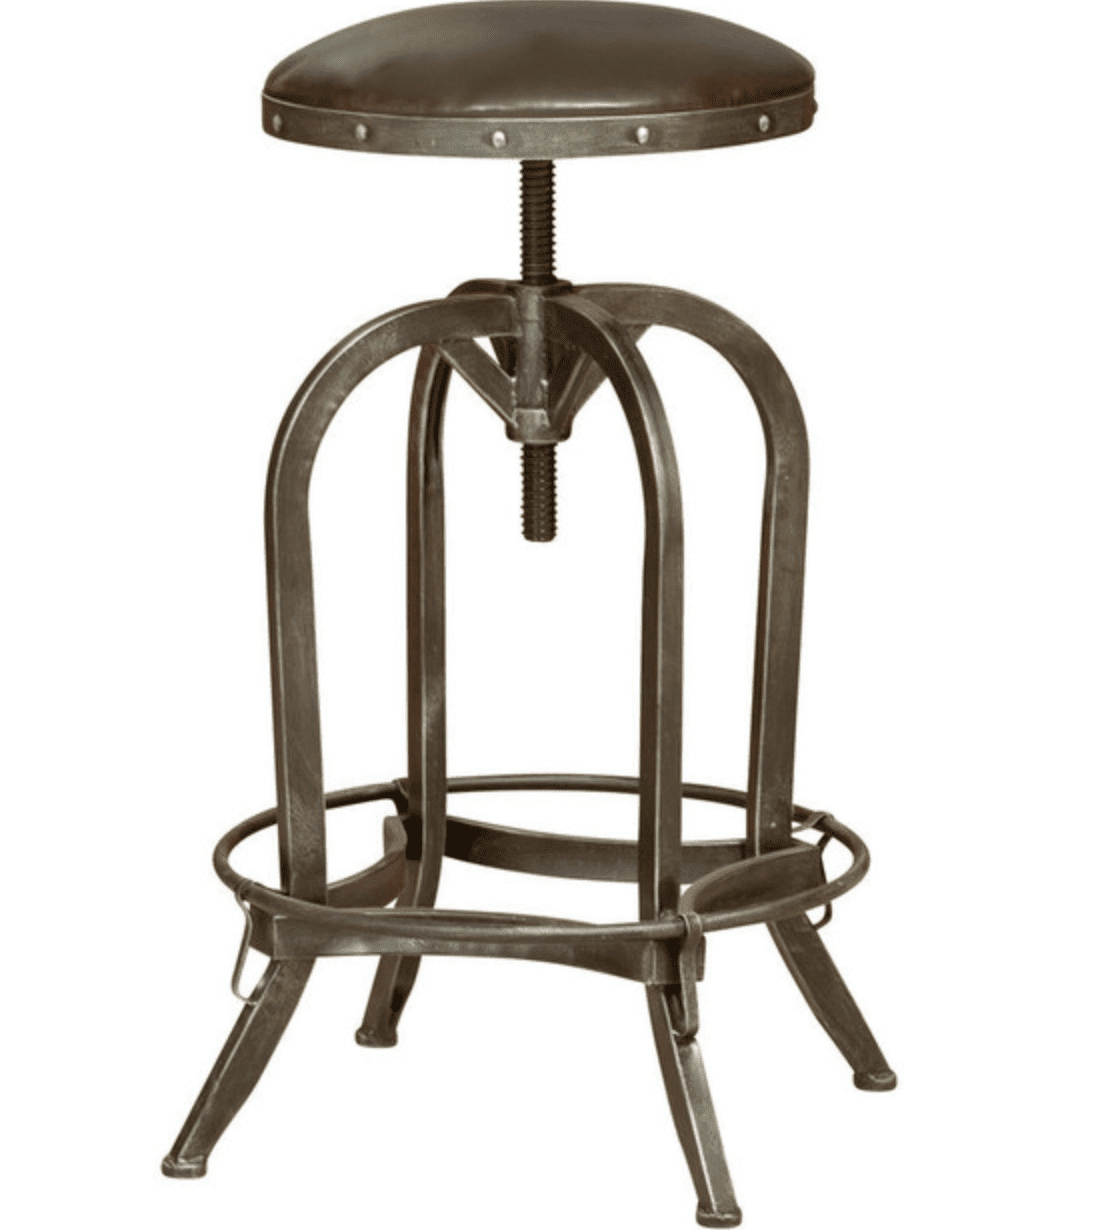 GDF Studio Dempsey Bar Stool in Brown Leather